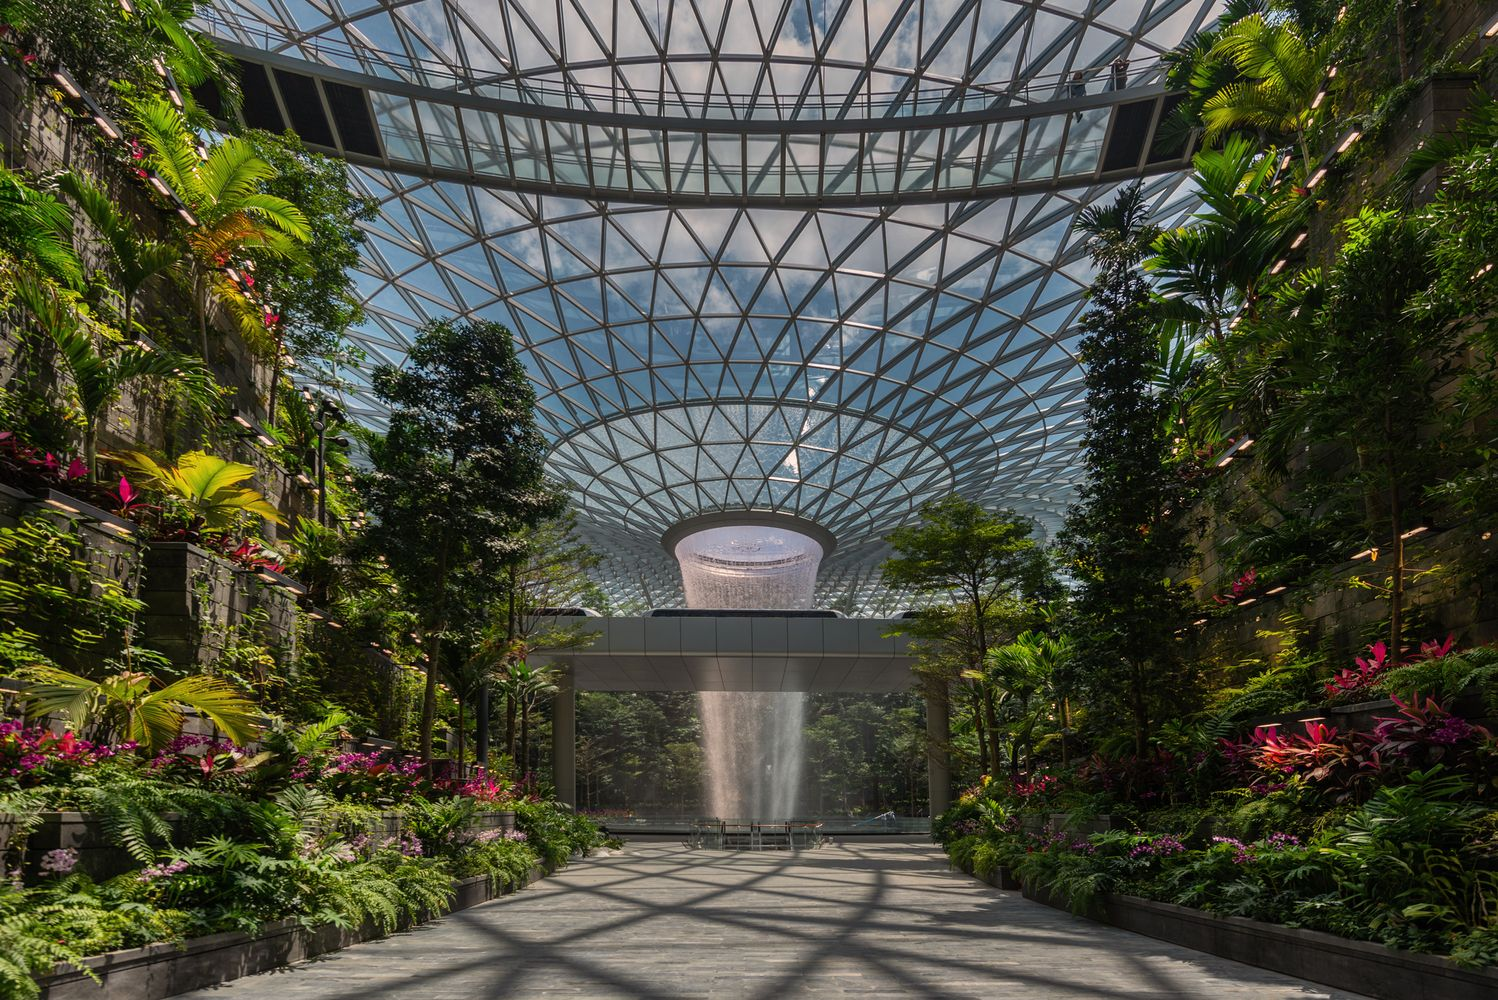 Gallery Of Safdie Completes World S Tallest Indoor Waterfall In Singapore 10 Indoor Waterfall Singapore Changi Airport Airport Design